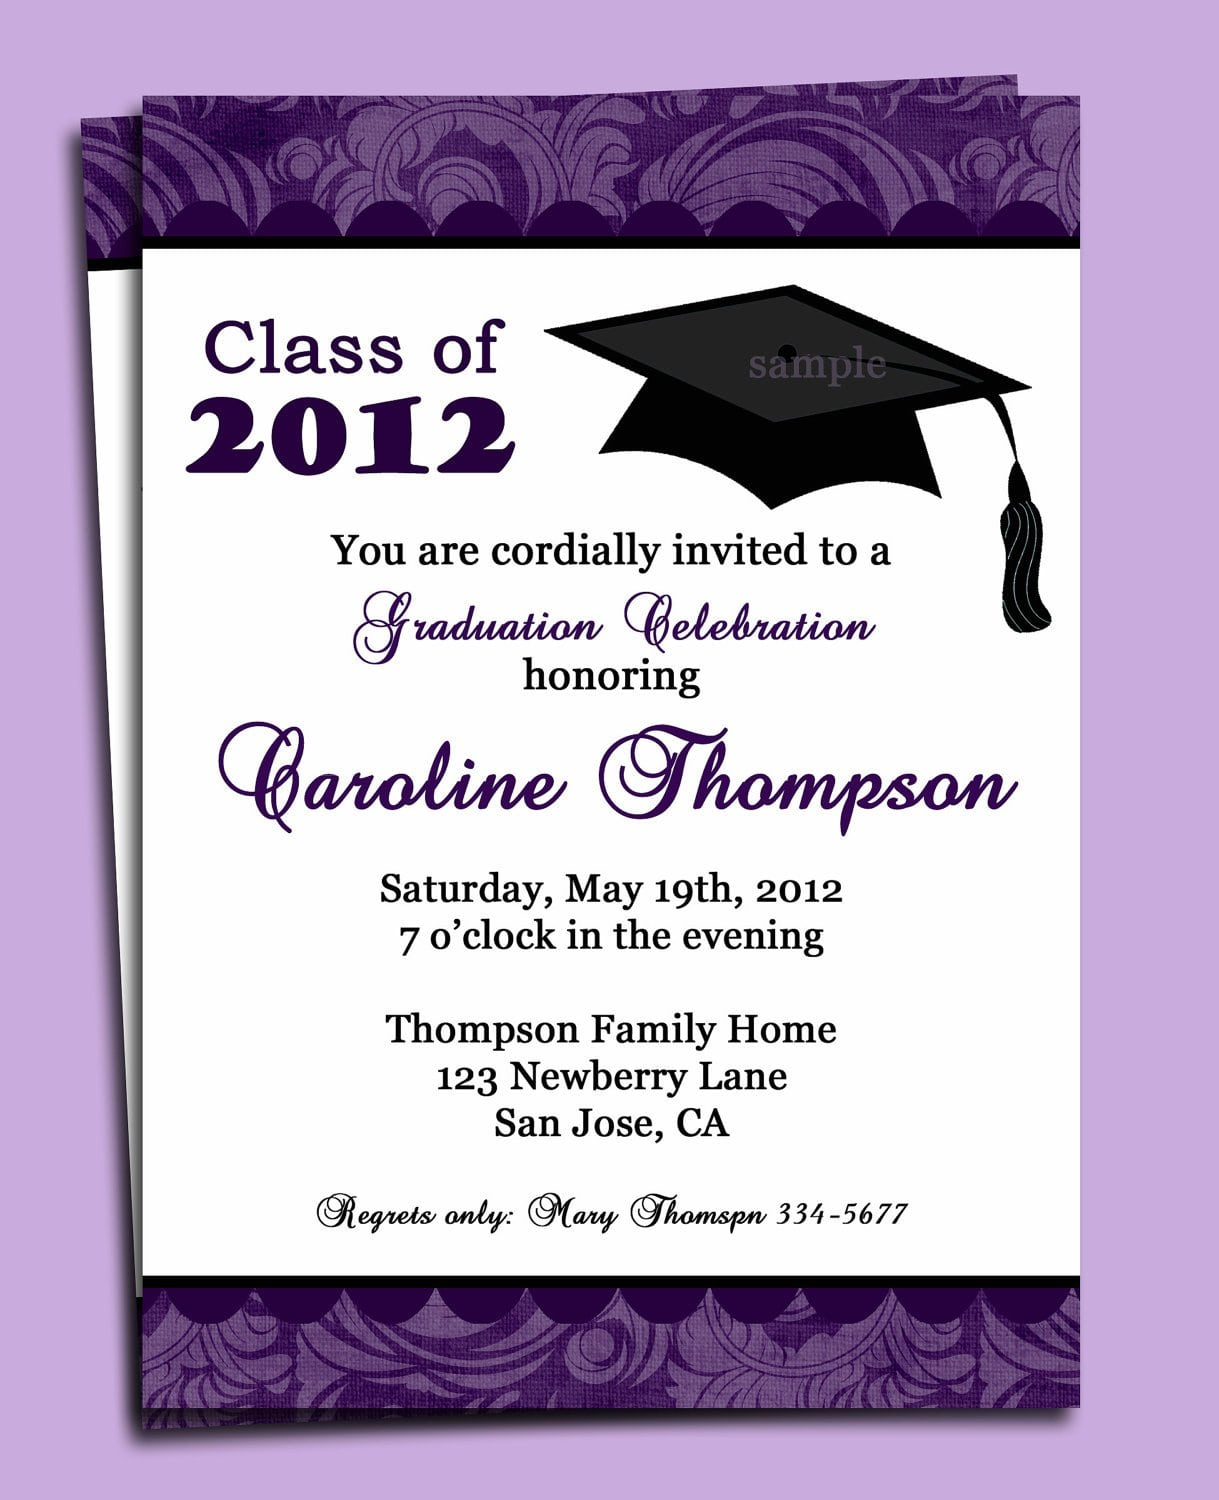 Graduation Invitation Examples can inspire you to create best invitation template